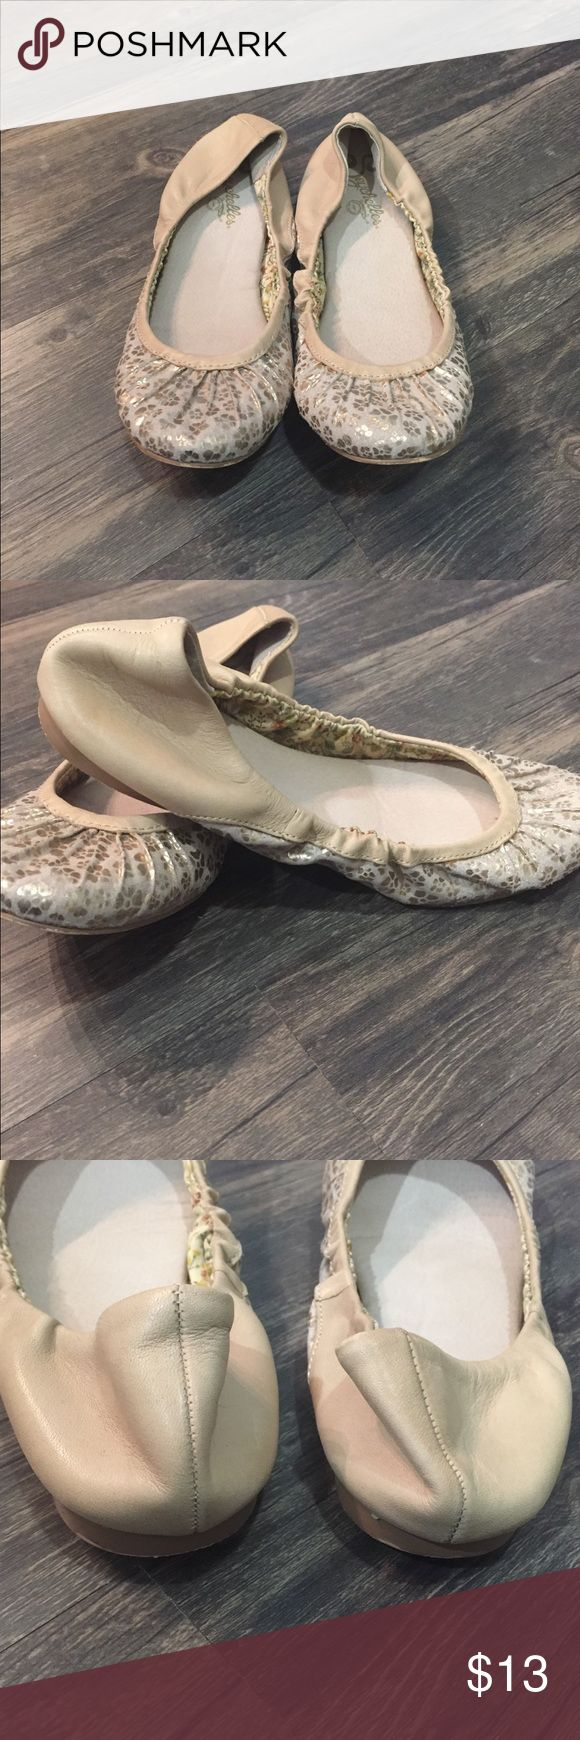 🌸💛Seychelles Floral Ballet Flats💛🌸 Great pre-loved condition.  Sturdy but flexible soles.  Interior of shoe bed in great condition, no staining. Seychelles Shoes Flats & Loafers